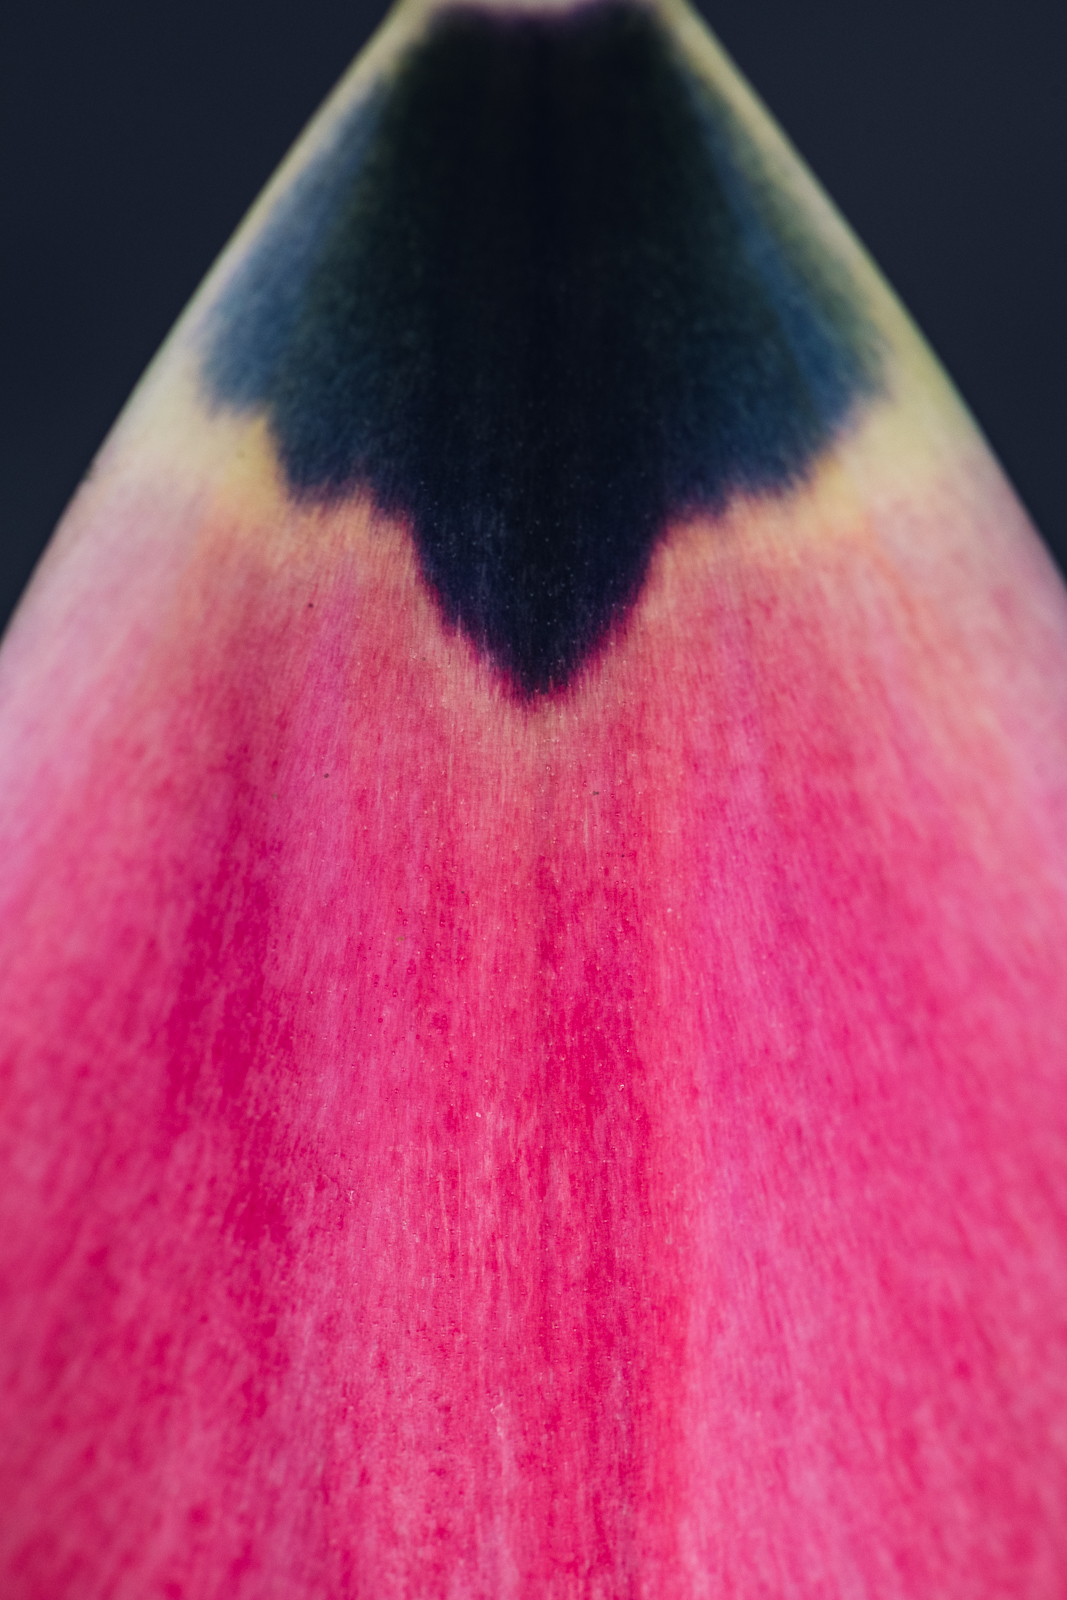 single hot pink petal from a tulip